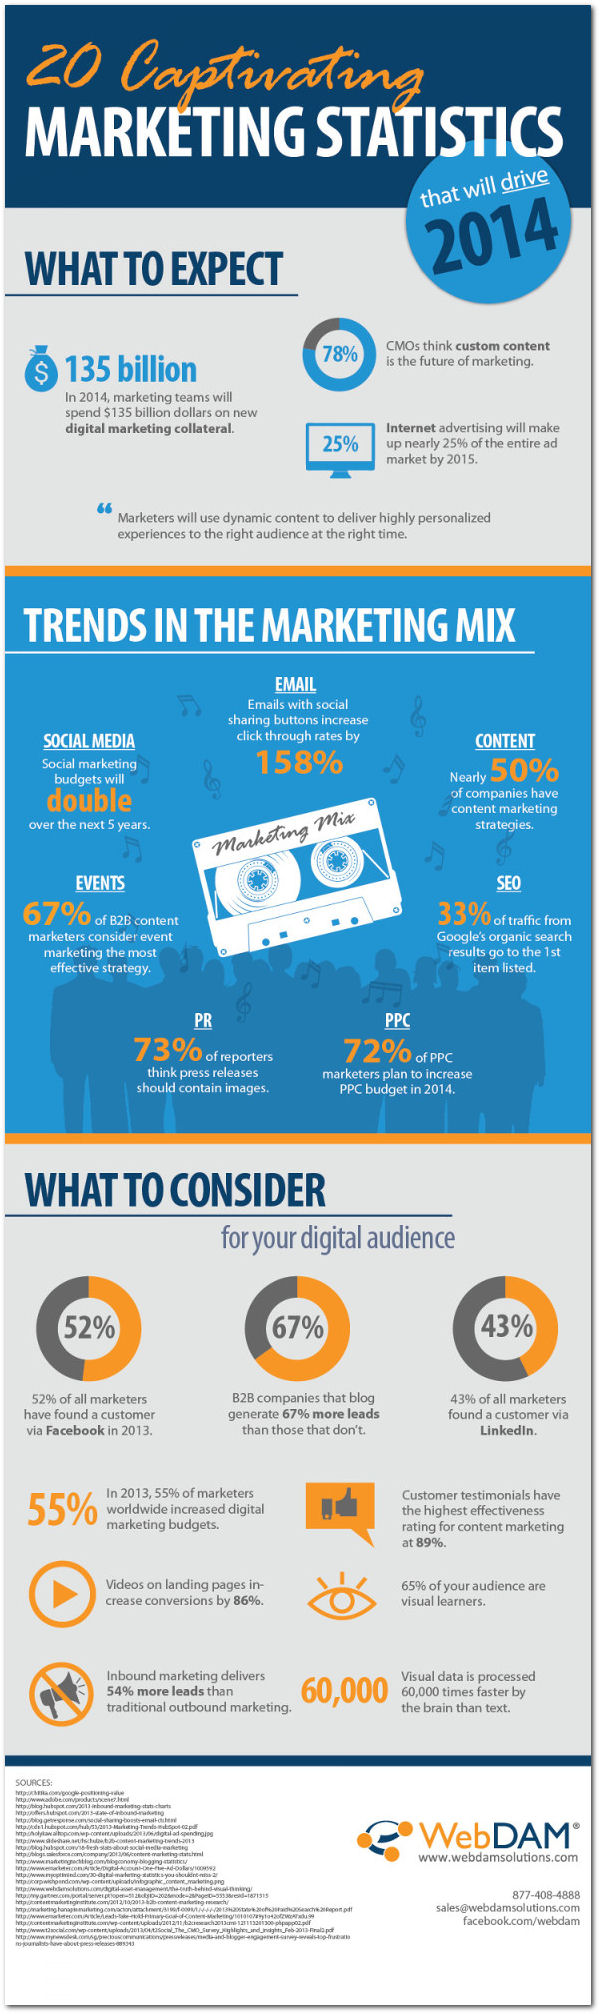 2014 Digital Marketing Trends